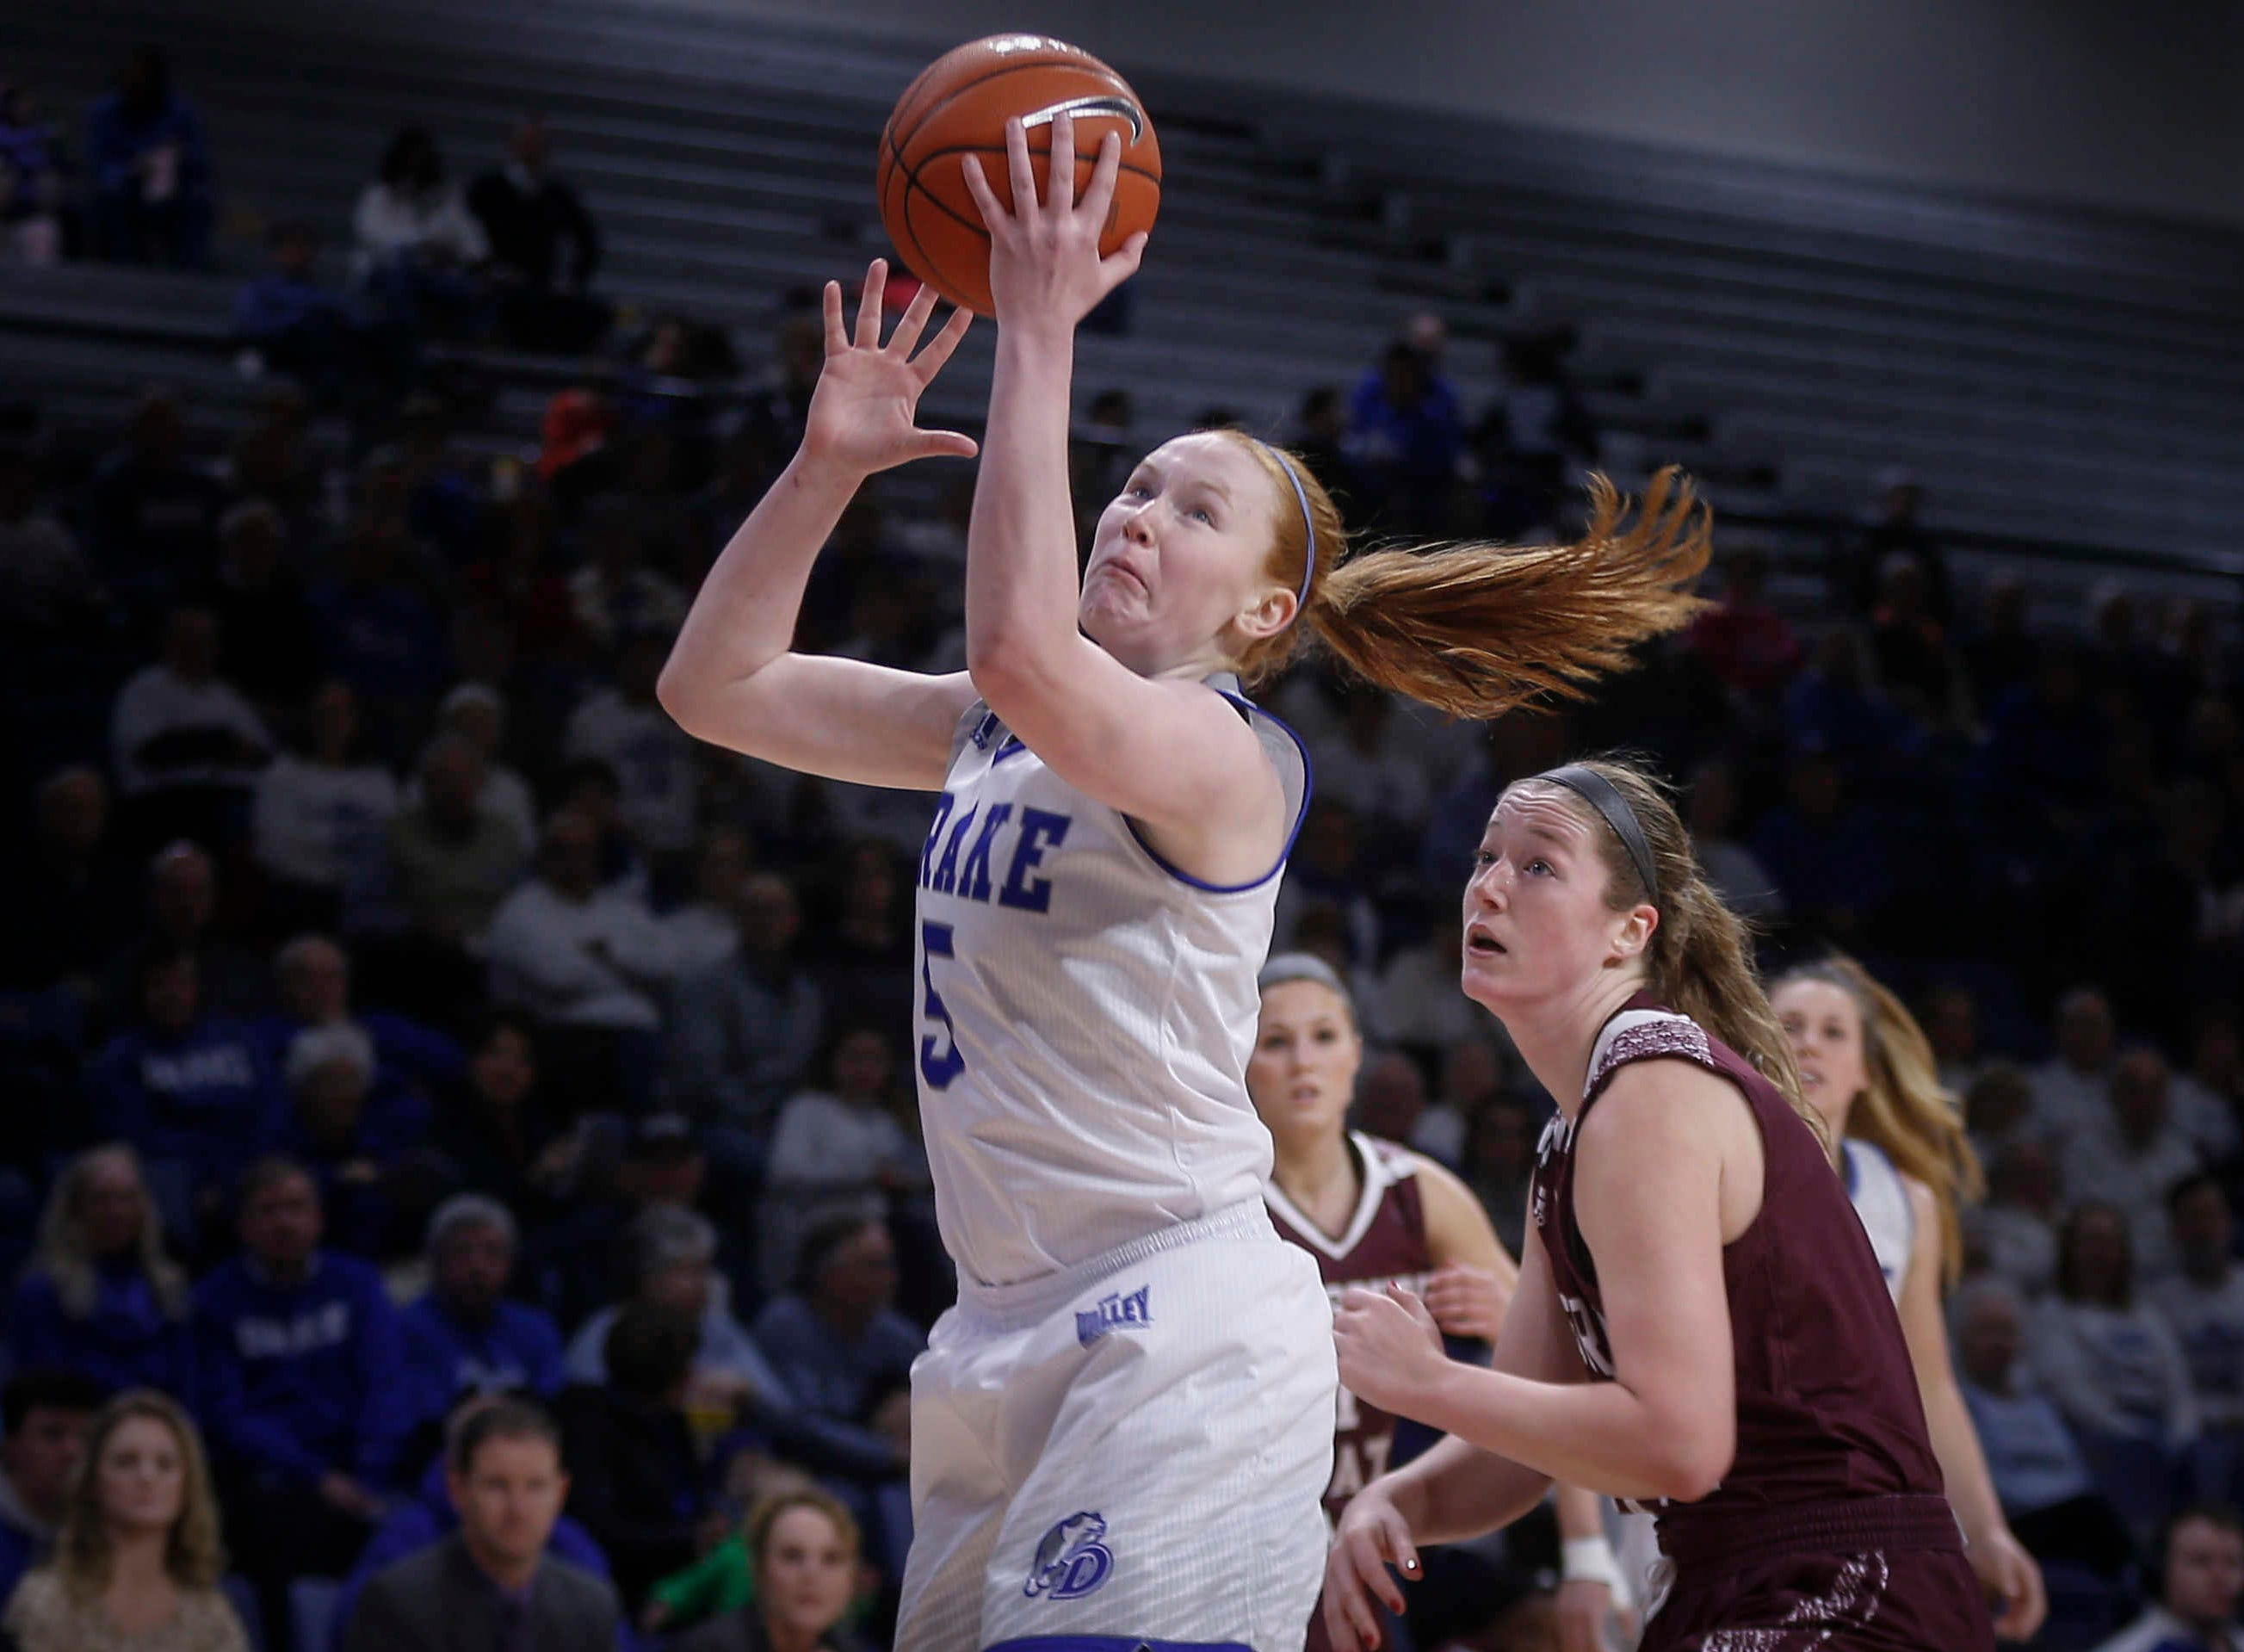 Drake junior Becca Hittner drives to the hoop against Missouri State on Friday, Feb. 1, 2019, at Knapp Auditorium in Des Moines.